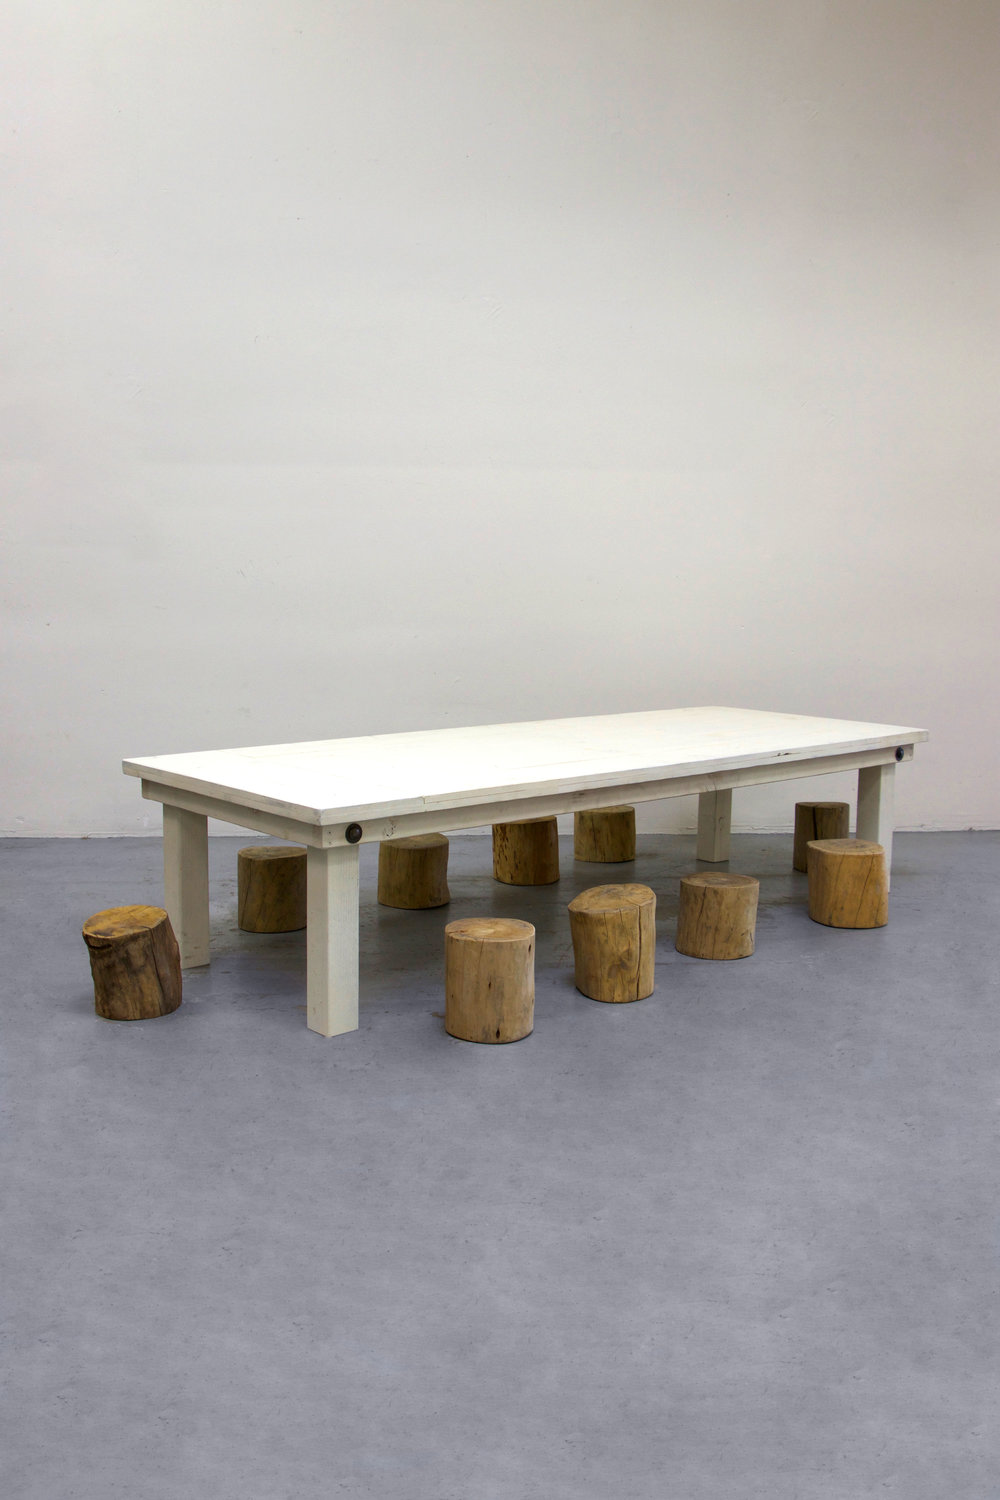 1 Kids Vintage White Farm Table w/ 10 Tree Stumps